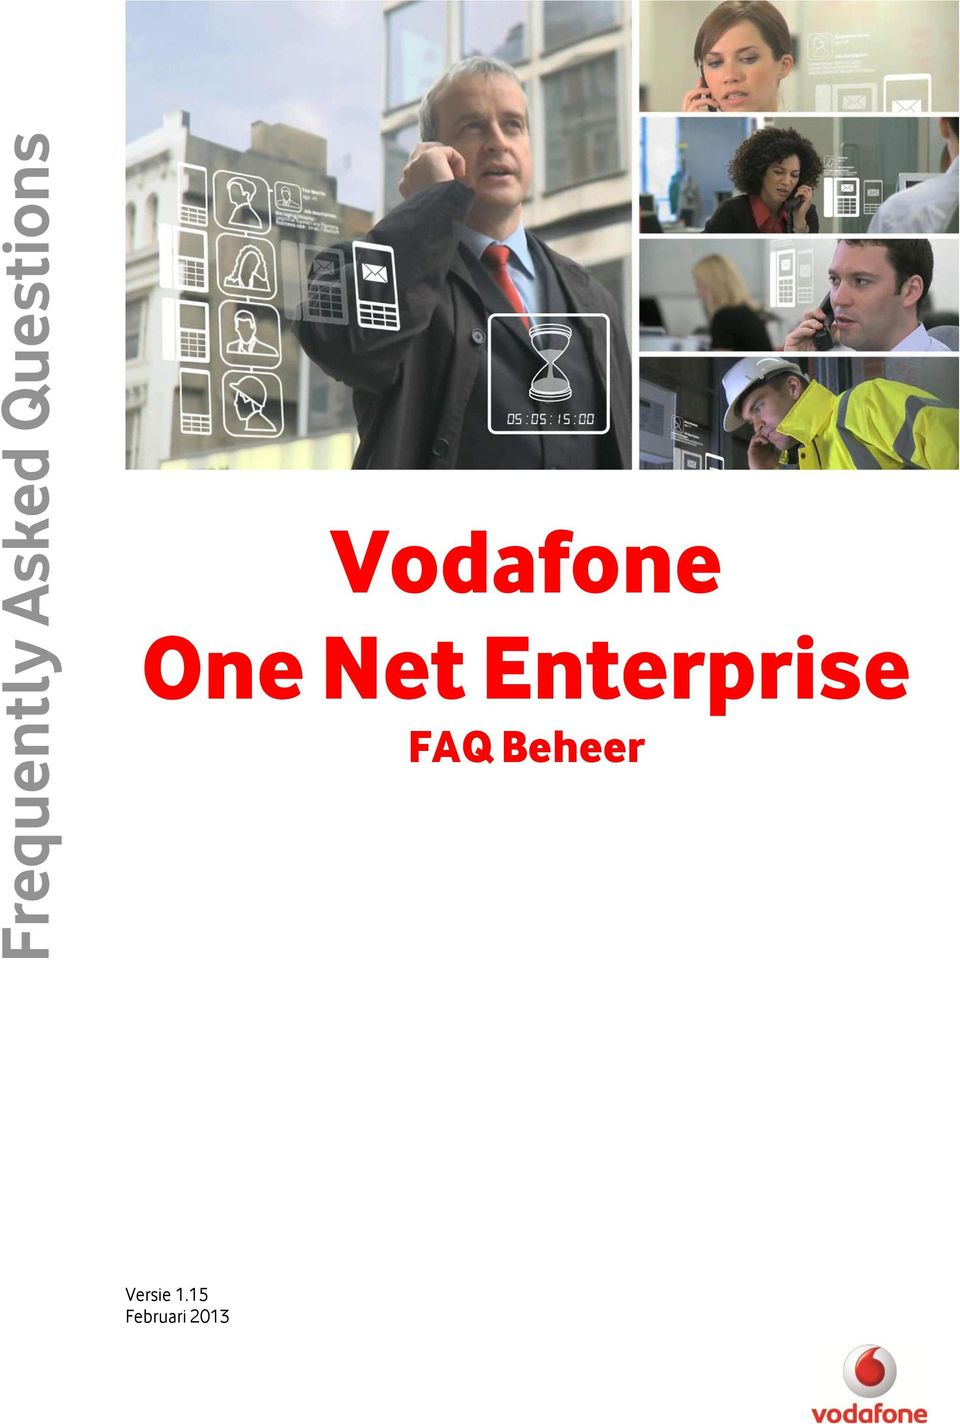 Hosted Voice Vodafone One Net